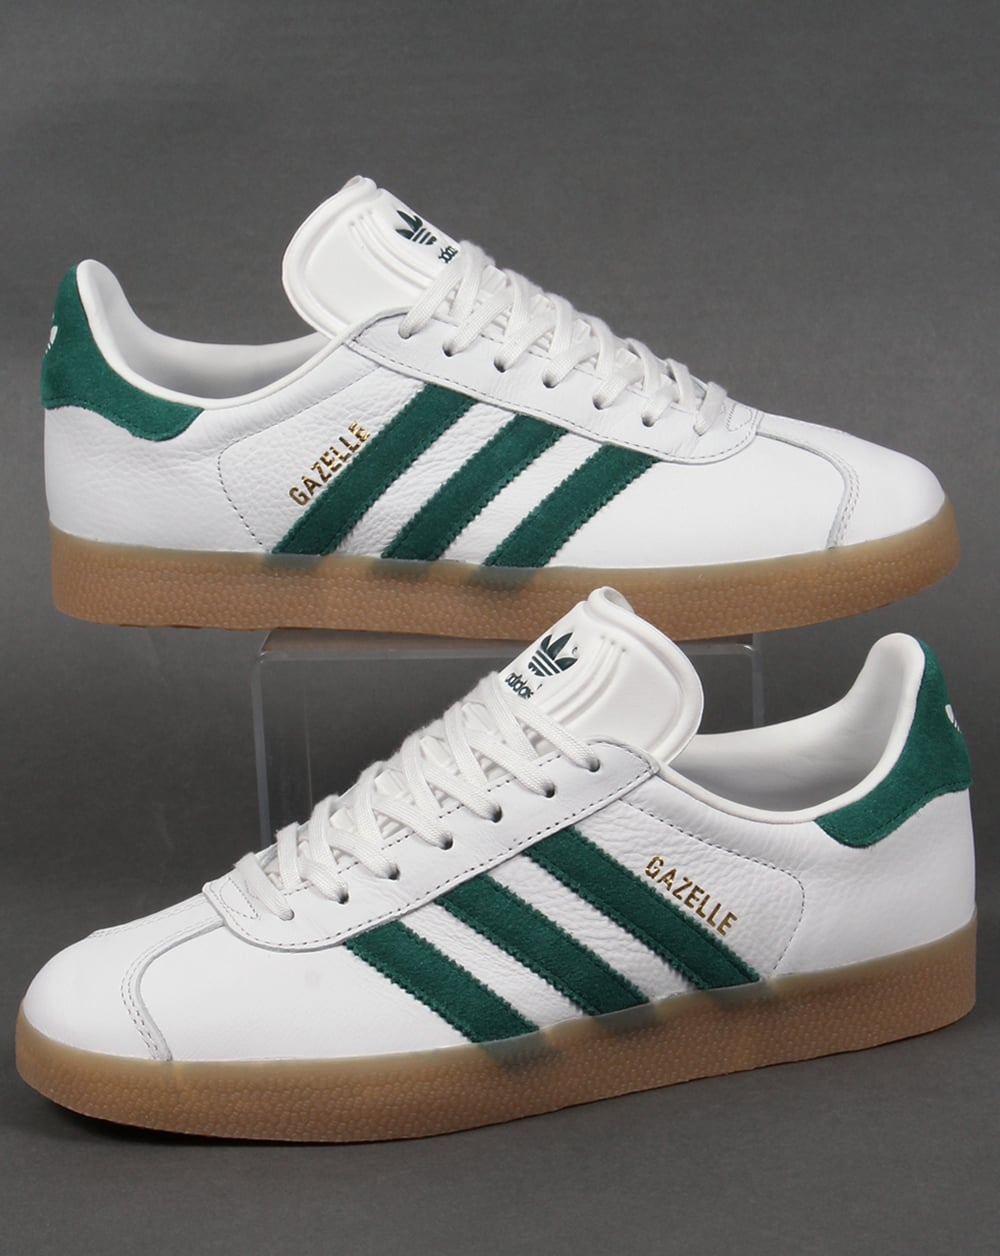 Adidas Gazelle Leather Trainers in White/Green/Gum